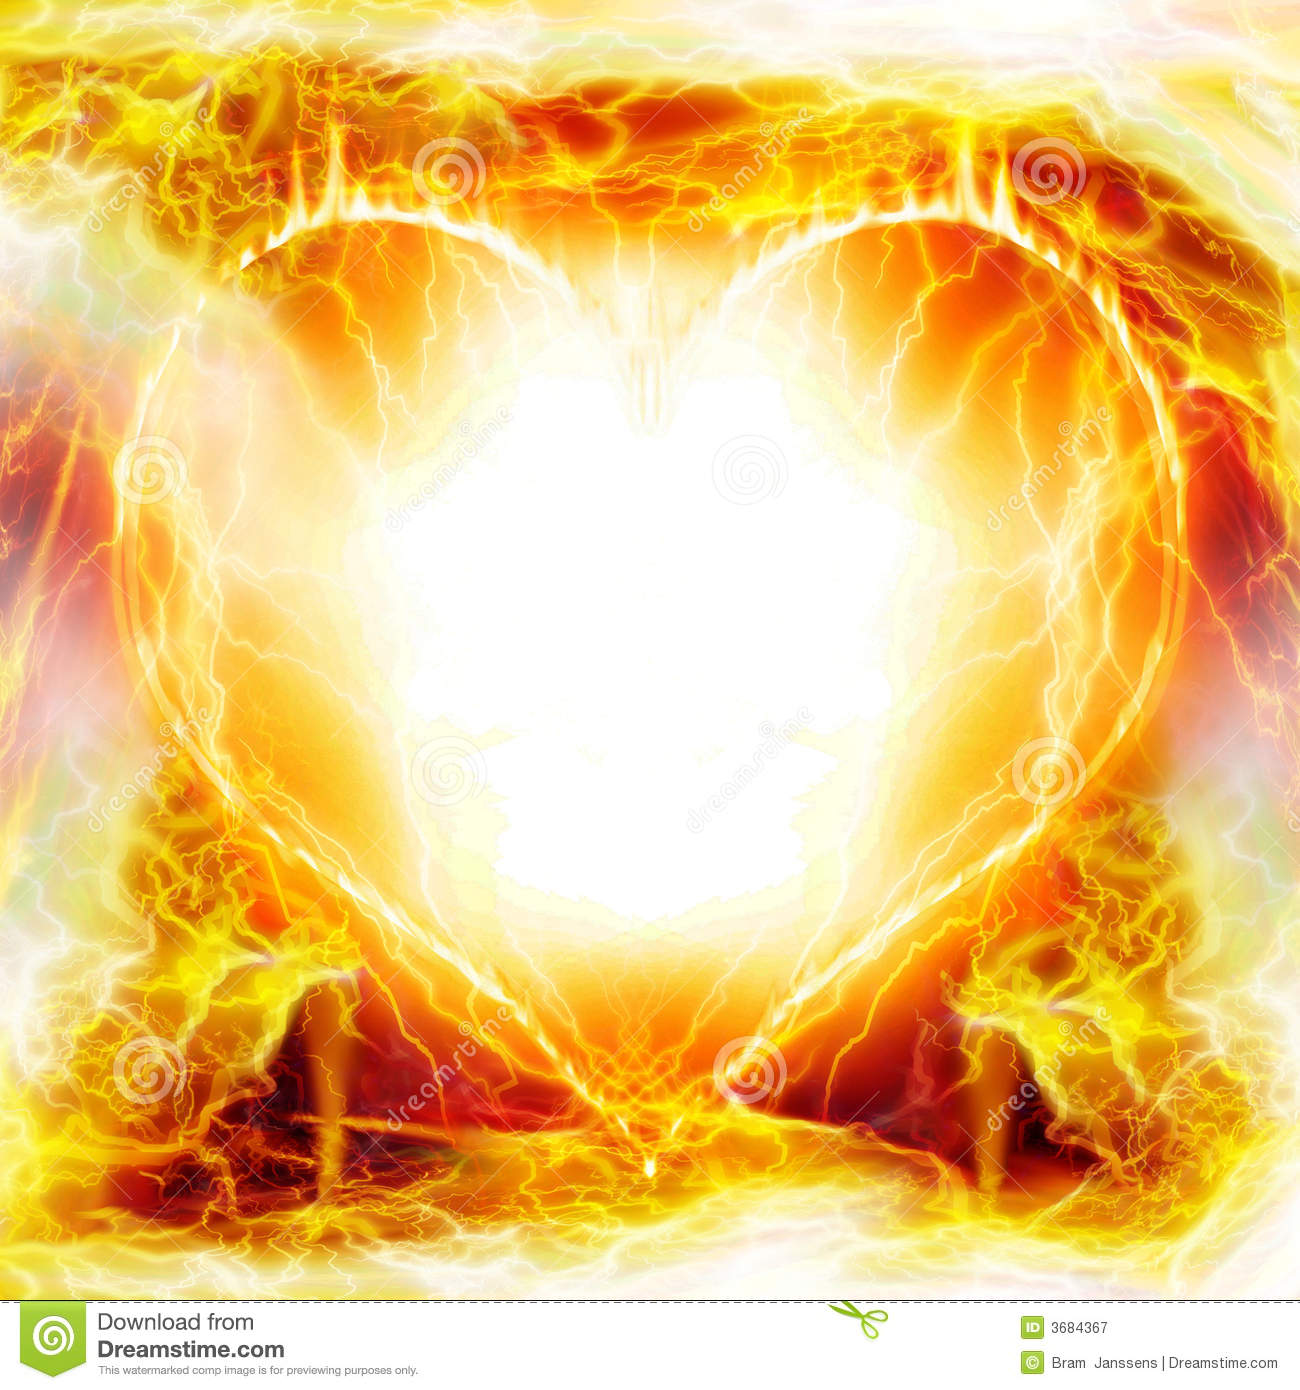 heart on fire stock illustration image of fire yellow